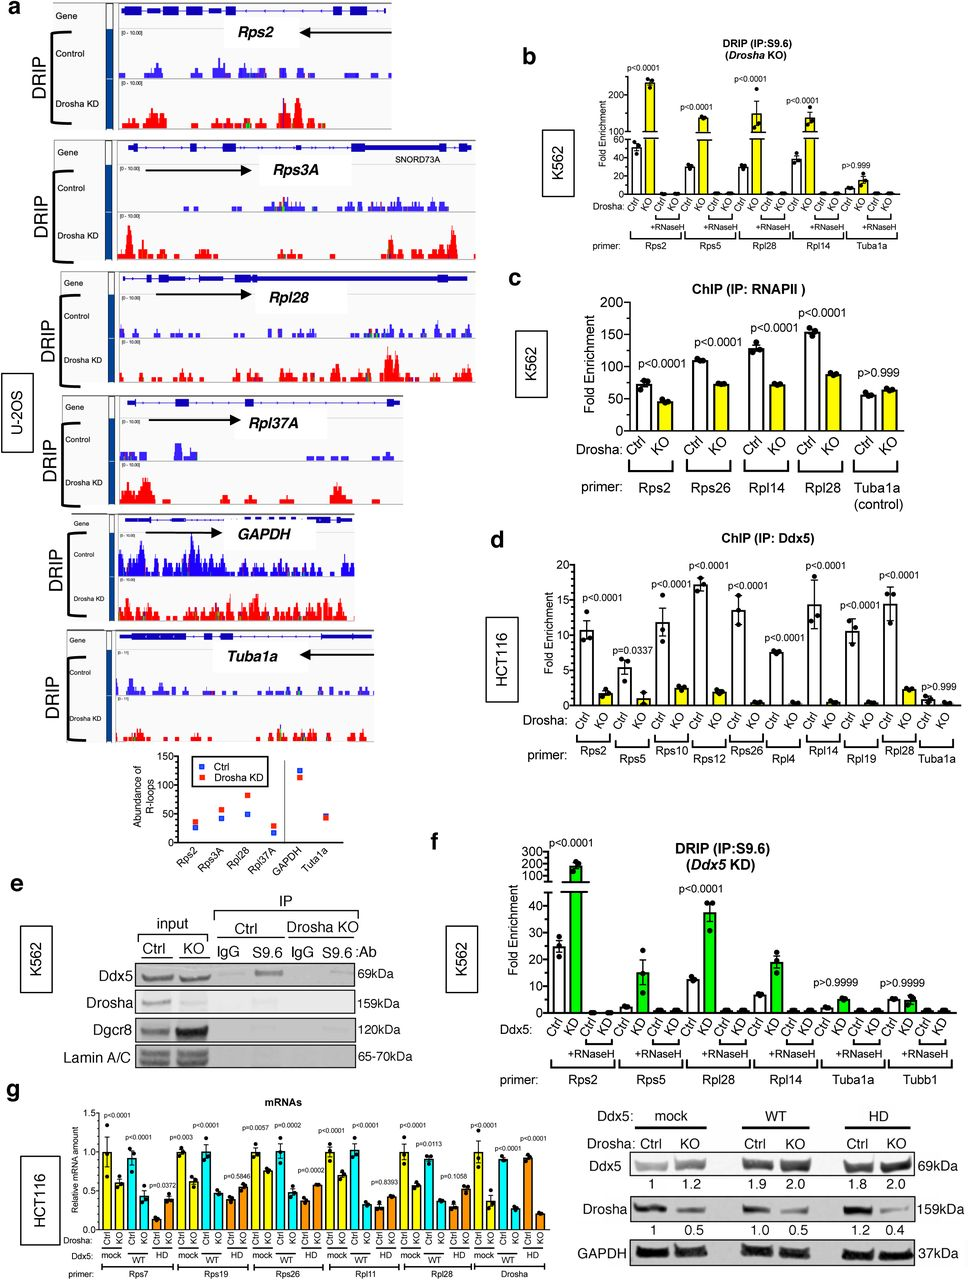 The Ddx5 helicase reduces DNA/RNA hybrid and facilitates transcription elongation. A. DNA/RNA hybrid IP-sequencing (DRIP-seq) data indicate increased R-loops at the RPG loci (Rps2, Rps3A, Rpl28, and Rpl37A) and control loci (GAPDH and Tuba1a) in Drosha KD cells (red) compared to control U-2 OS cells (blue) (top). Quantitation of the DRIP-seq data is shown (bottom). b. DRIP analysis of RPG loci (Rps2, Rps5, Rpl14) and control locus (Tuba1a) locus in the presence or absence of RNase H in HCT116 cells expressing CRISPR/Cas9 against Drosha (KO) or non-specific control (Ctrl). Four sets of primers used for DRIP analysis are indicated as black boxes in the top panel (bottom). Signal relative to input is plotted as Mean ± SEM. n=3 c. ChIP-qPCR analysis using anti-RNAPII antibody was performed in K562 cells cells expressing CRISPR/Cas9 against Drosha (KO) or non-specific control (Ctrl). Primers for RPG loci (Rps2, Rps26, Rpl14, Rpl28) and control locus (Tuba1a) are shown. Mean ± SEM. n=3. d. ChIP-qPCR analysis using anti-Ddx5 antibody of RPG loci (Rps2, Rps5, Rps10, Rps12, Rps26, Rpl4, Rpl14, Rpl19, Rpl28) and control locus(Tuba1a) in control (Ctrl) or Drosha KO HCT116 cells. Fold enrichment of Ddx5 antibody pull-down against IgG pull-down is plotted as Mean ± SEM. n=3. e. Immunoprecipitation of DNA/RNA hybrids with the S9.6 antibody, followed by immunoblot analysis of Ddx5, Drosha, Dgcr8 and Lamin A/C (negative control) in Ctrl or Drosha KO K562 cells. f. DRIP analysis of RPG loci (Rps2, Rps5, Rpl4, Rpl28) and control loci (Tuba1a and Tubb1) locus in the presence or absence of RNase H in K562 cells targeting Ddx5 gene ( Ddx5 KO) by RNAi or non-specific control (Ctrl). Result is plotted as Mean ± SEM. n=3 g. qRT-PCR analysis of various RP mRNAs and Drosha mRNAs (relative to GAPDH) in Ctrl or Drosha KO HCT116 cells transfected with empty plasmid (mock), Ddx5 wild type (WT) or the RNA helicase dead (HD) mutant expression plasmid (left). Result is plotted as Mean ± SEM. n=3 Dr